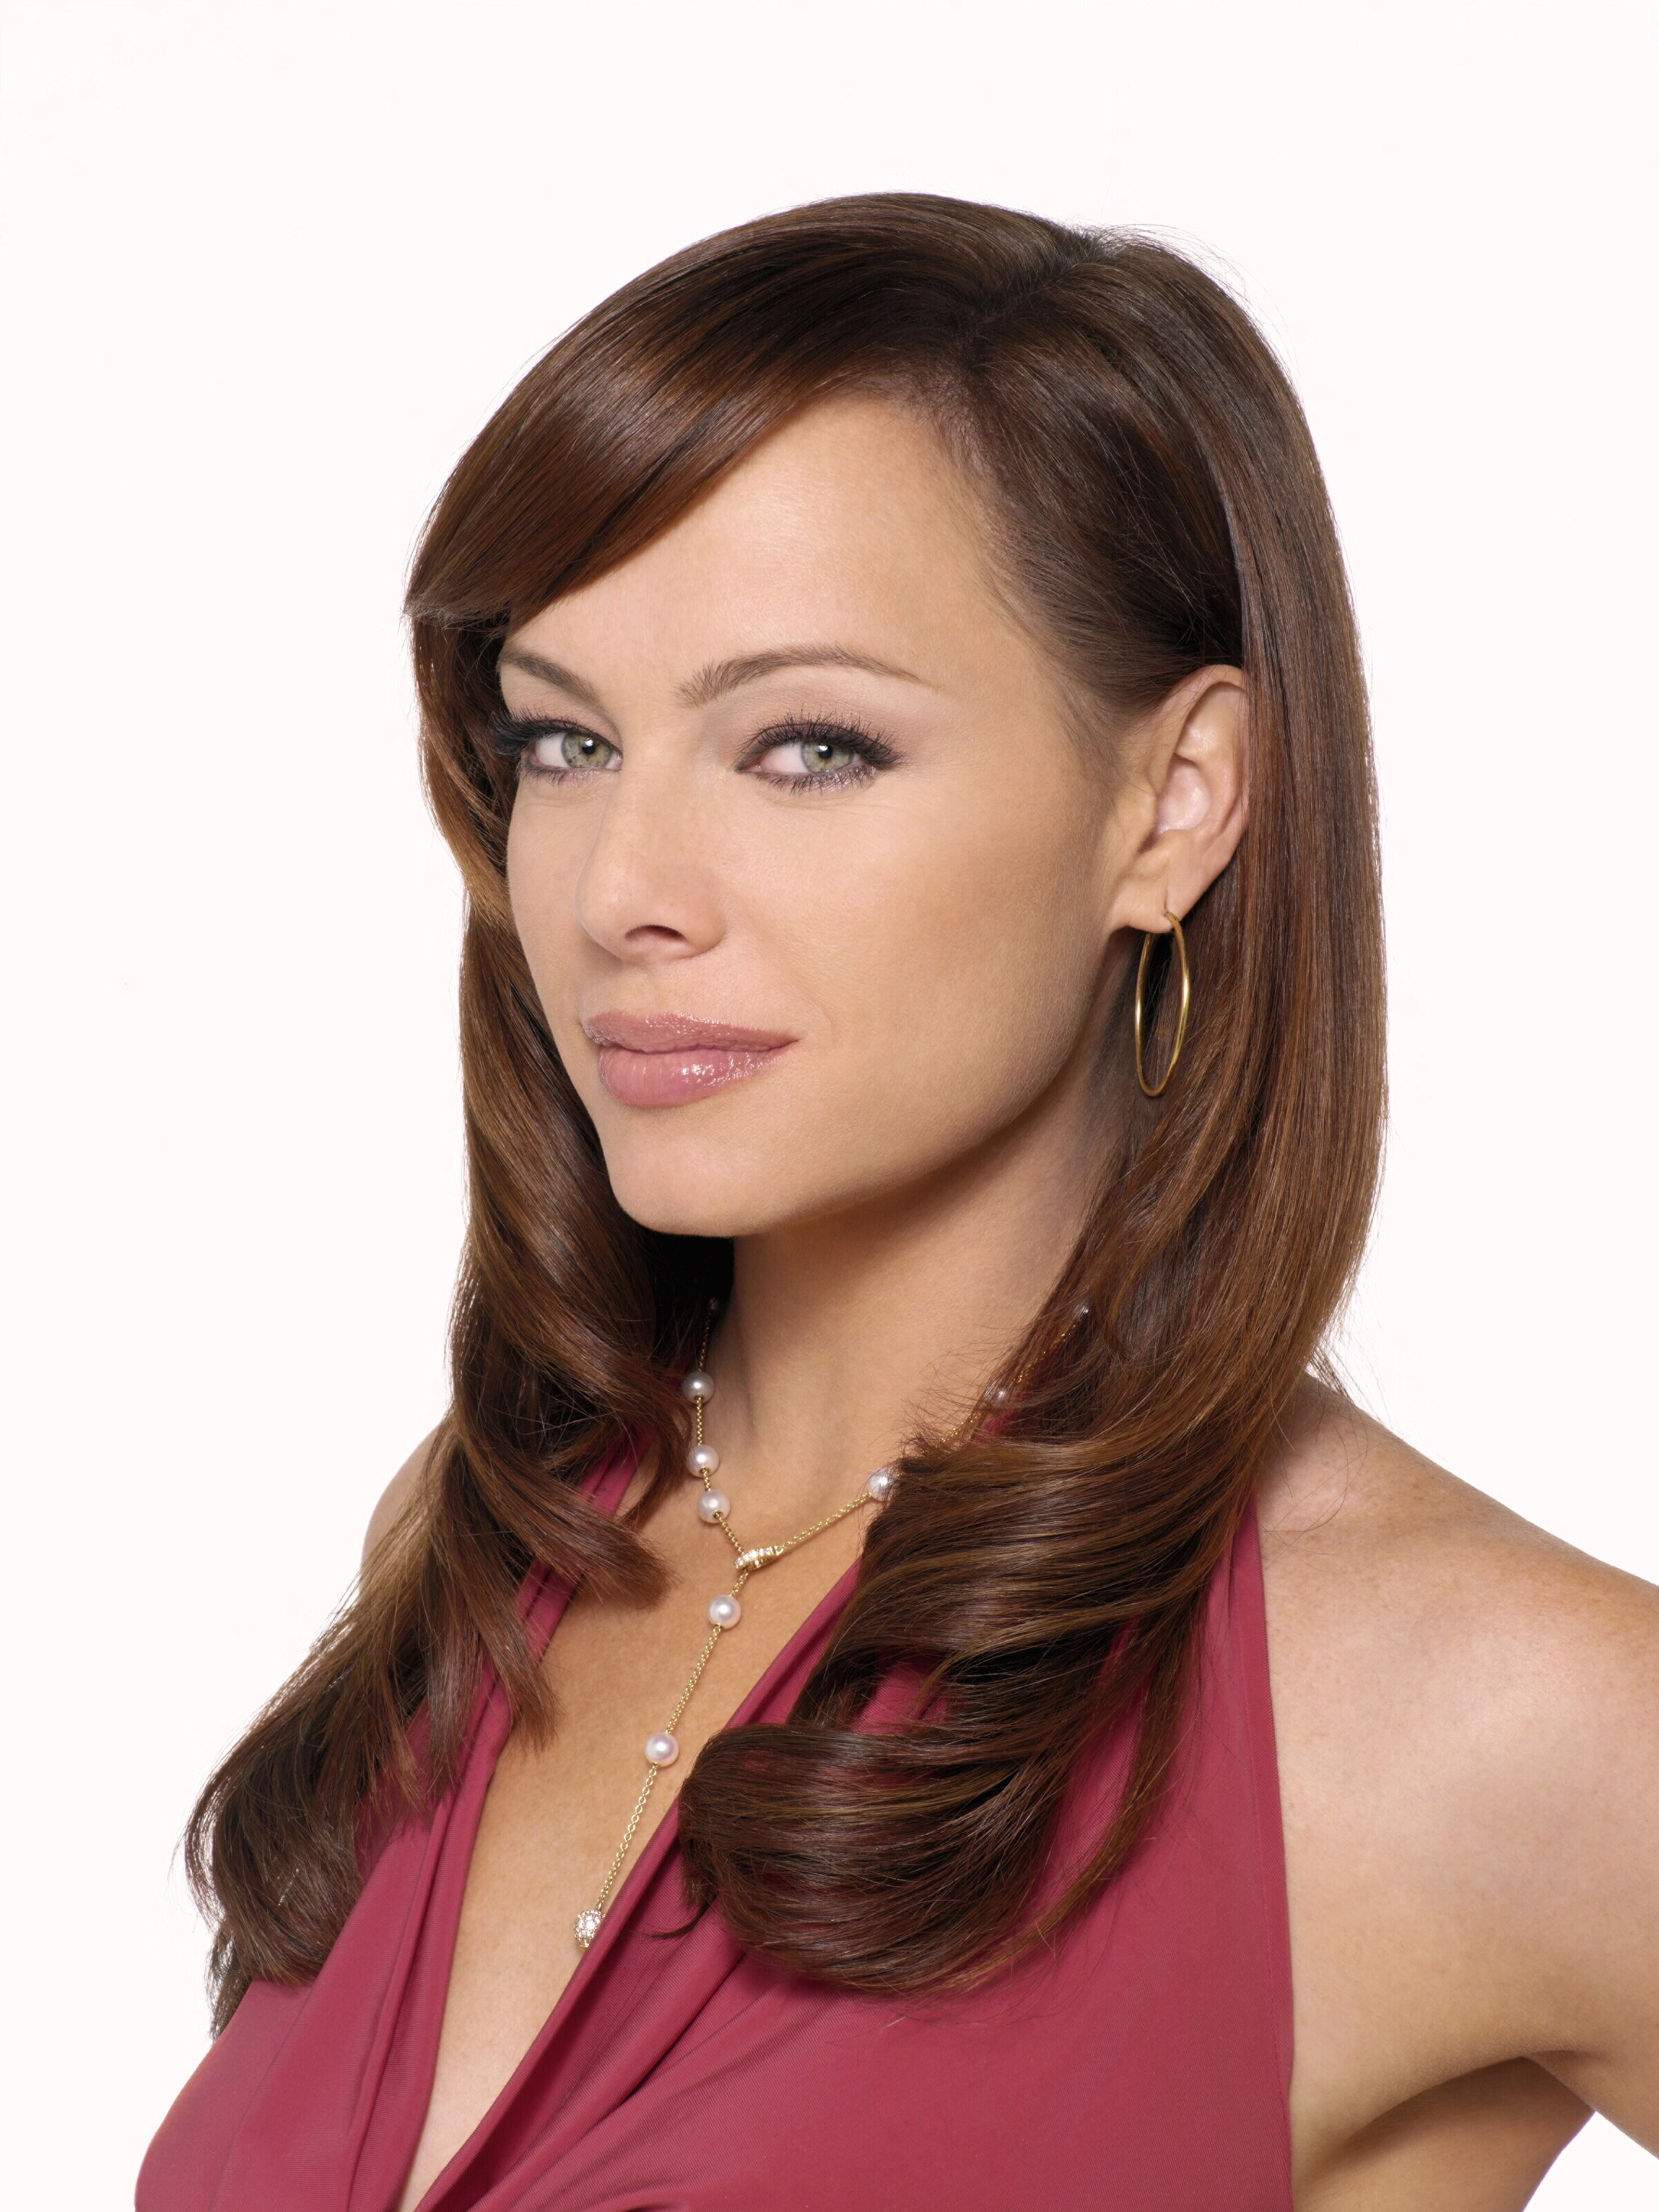 melinda clarke the oc